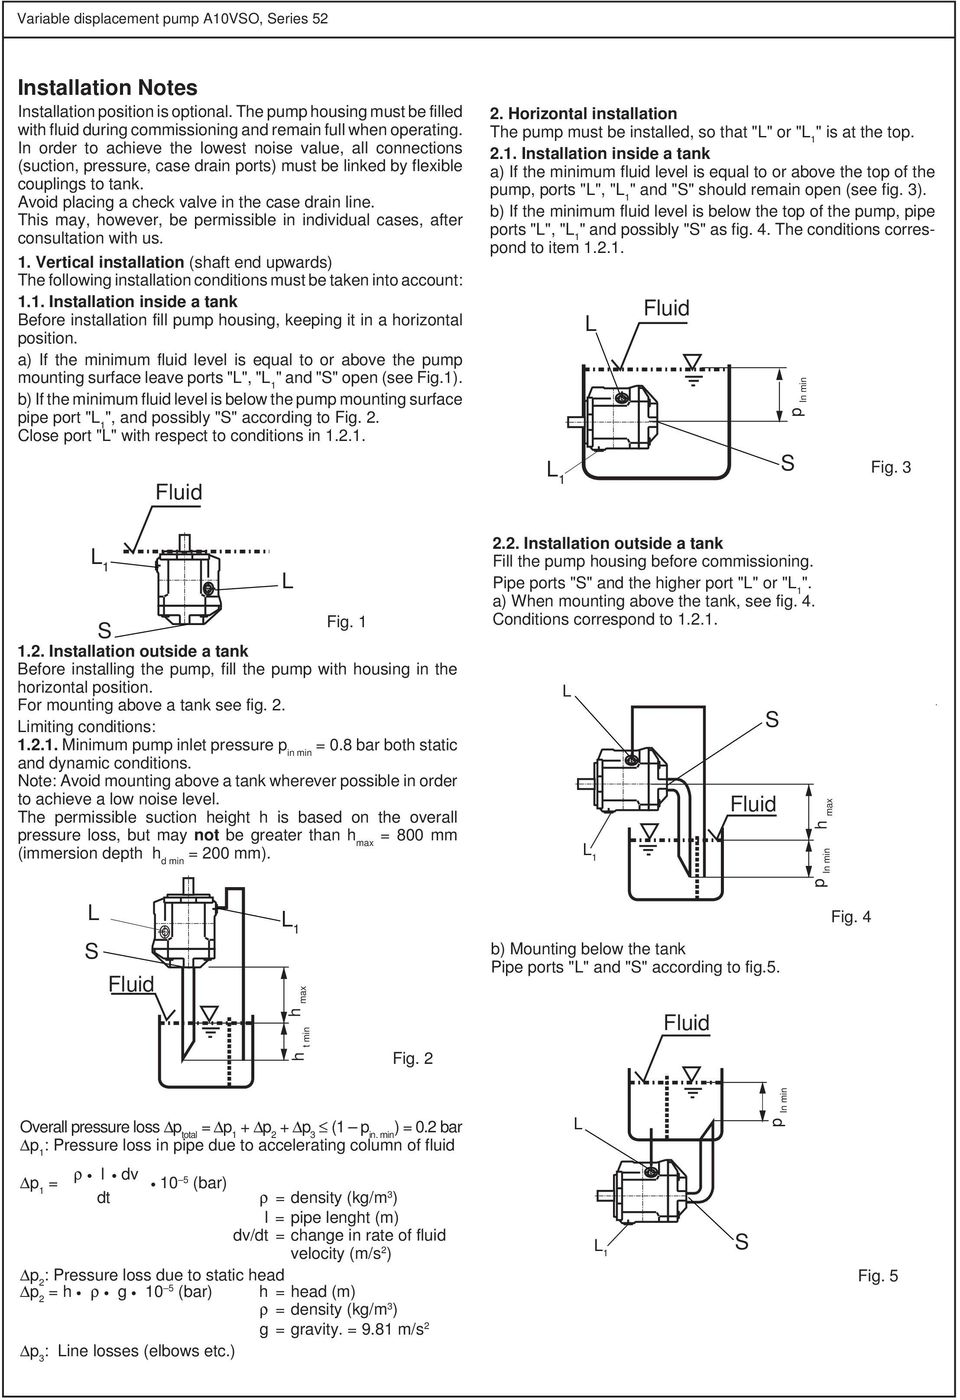 This may, however, be permissible in individual cases, after consultation with us. 1. Vertical installation (shaft end upwards) The following installation conditions must be taken into account: 1.1. Installation inside a tank efore installation fill pump housing, keeping it in a horizontal position.